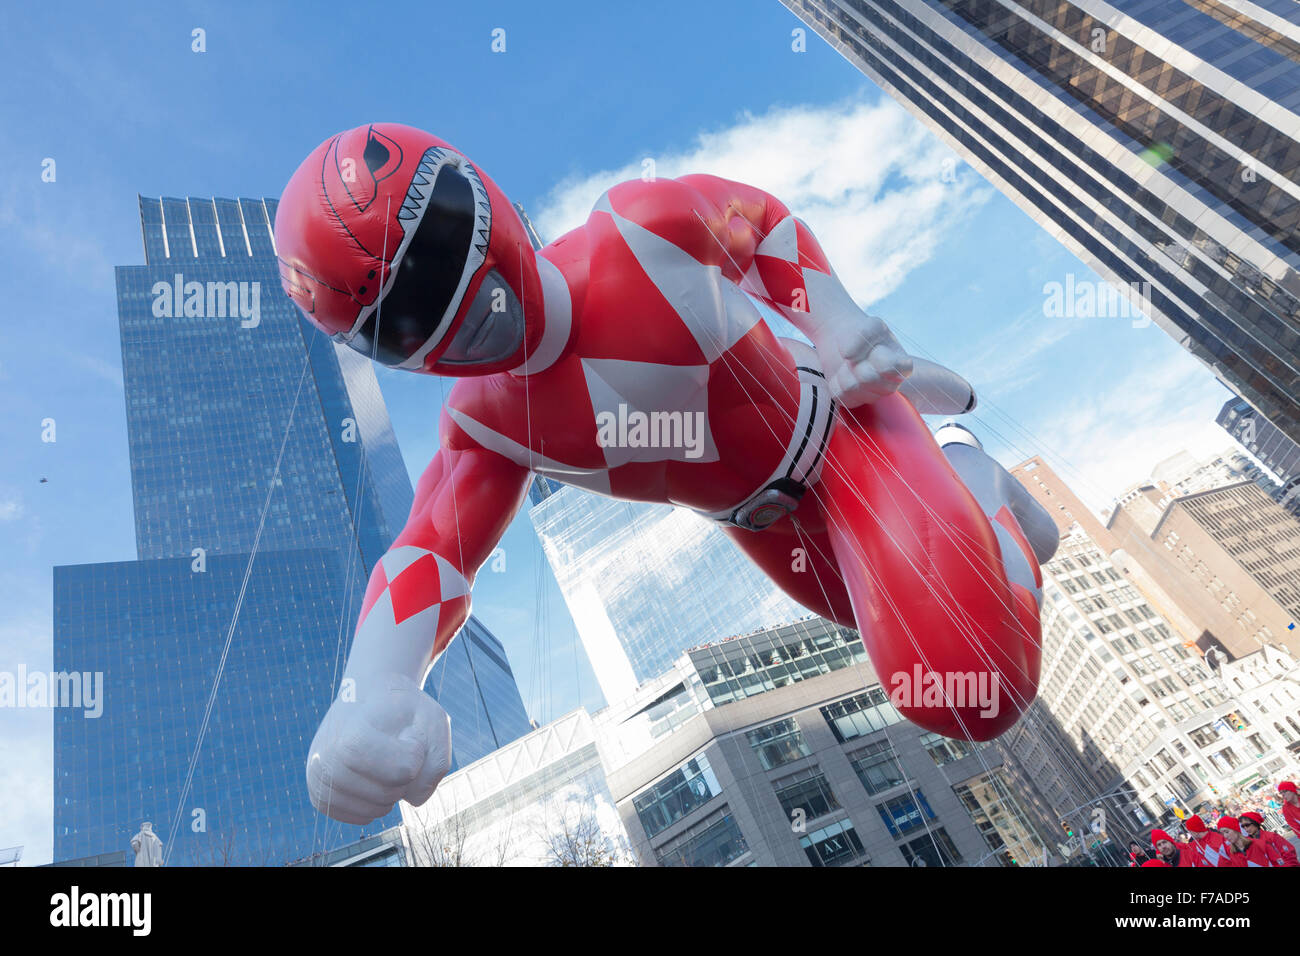 New York, NY USA - 26. November 2015: Giant Red Mighty Morphin Power Ranger Ballon geflogen an der 89. jährlichen Stockbild